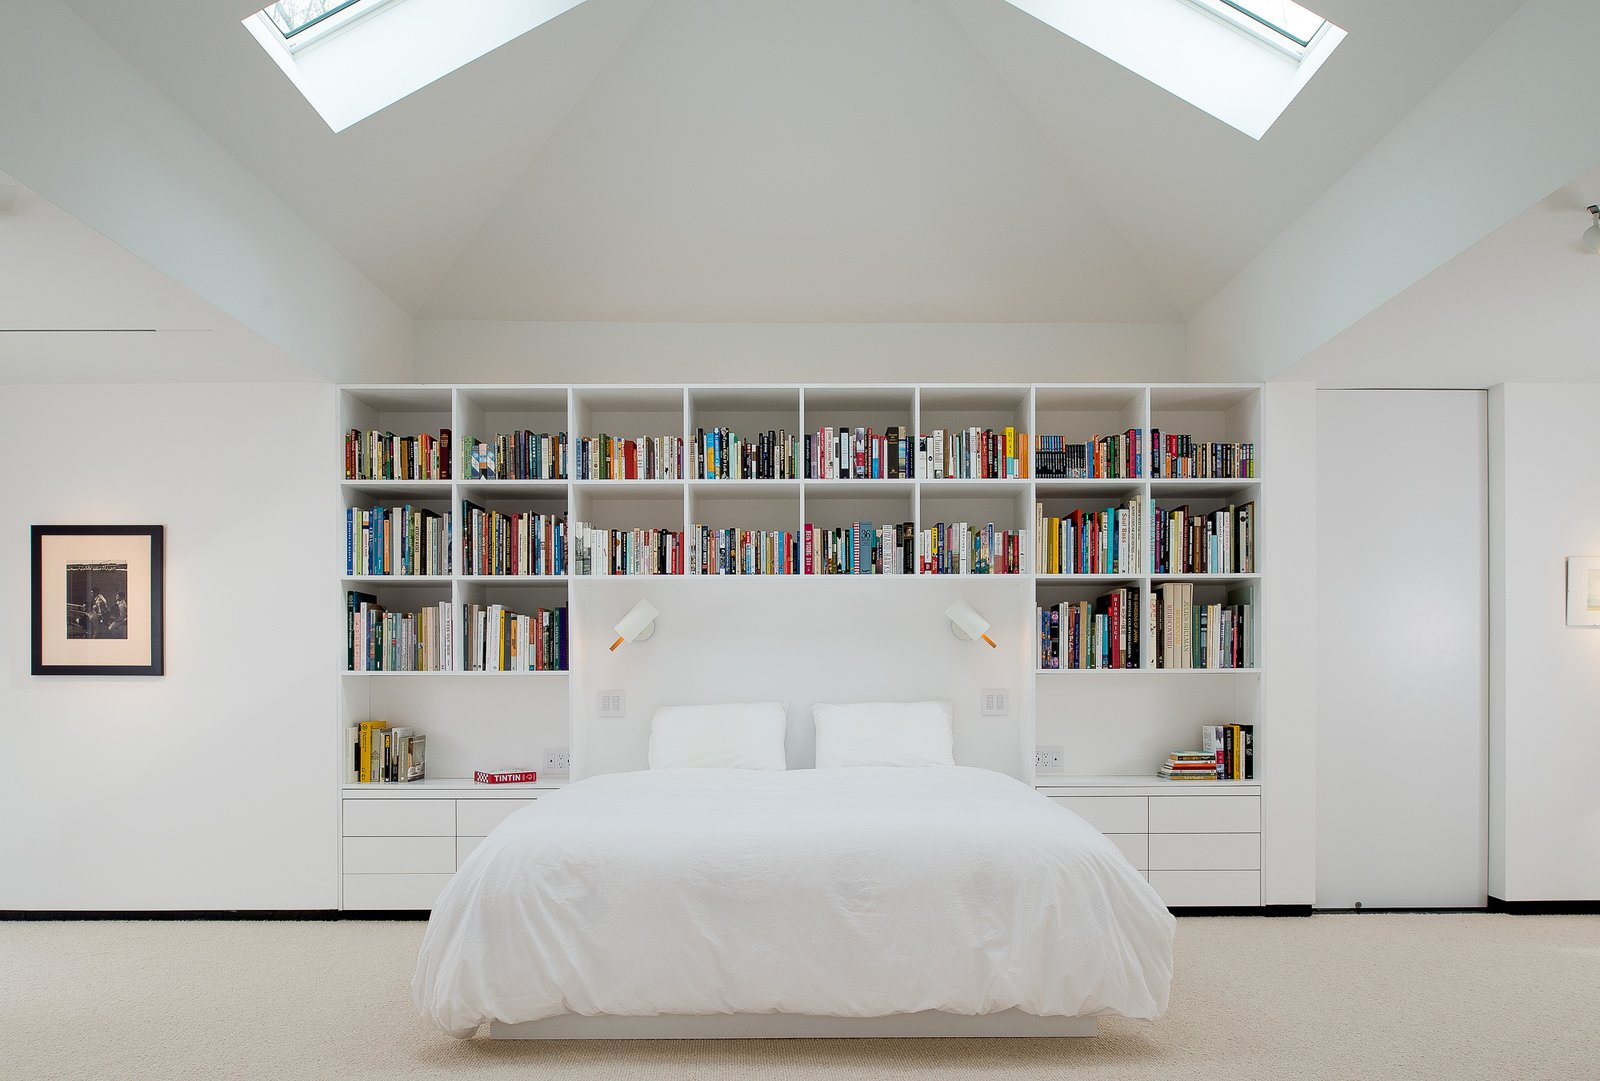 Bedroom, Bed, Storage, Bookcase, Shelves, Night Stands, Track, Pendant, and Carpet Master bedroom daytime  Best Bedroom Bookcase Carpet Track Photos from House in the Woods